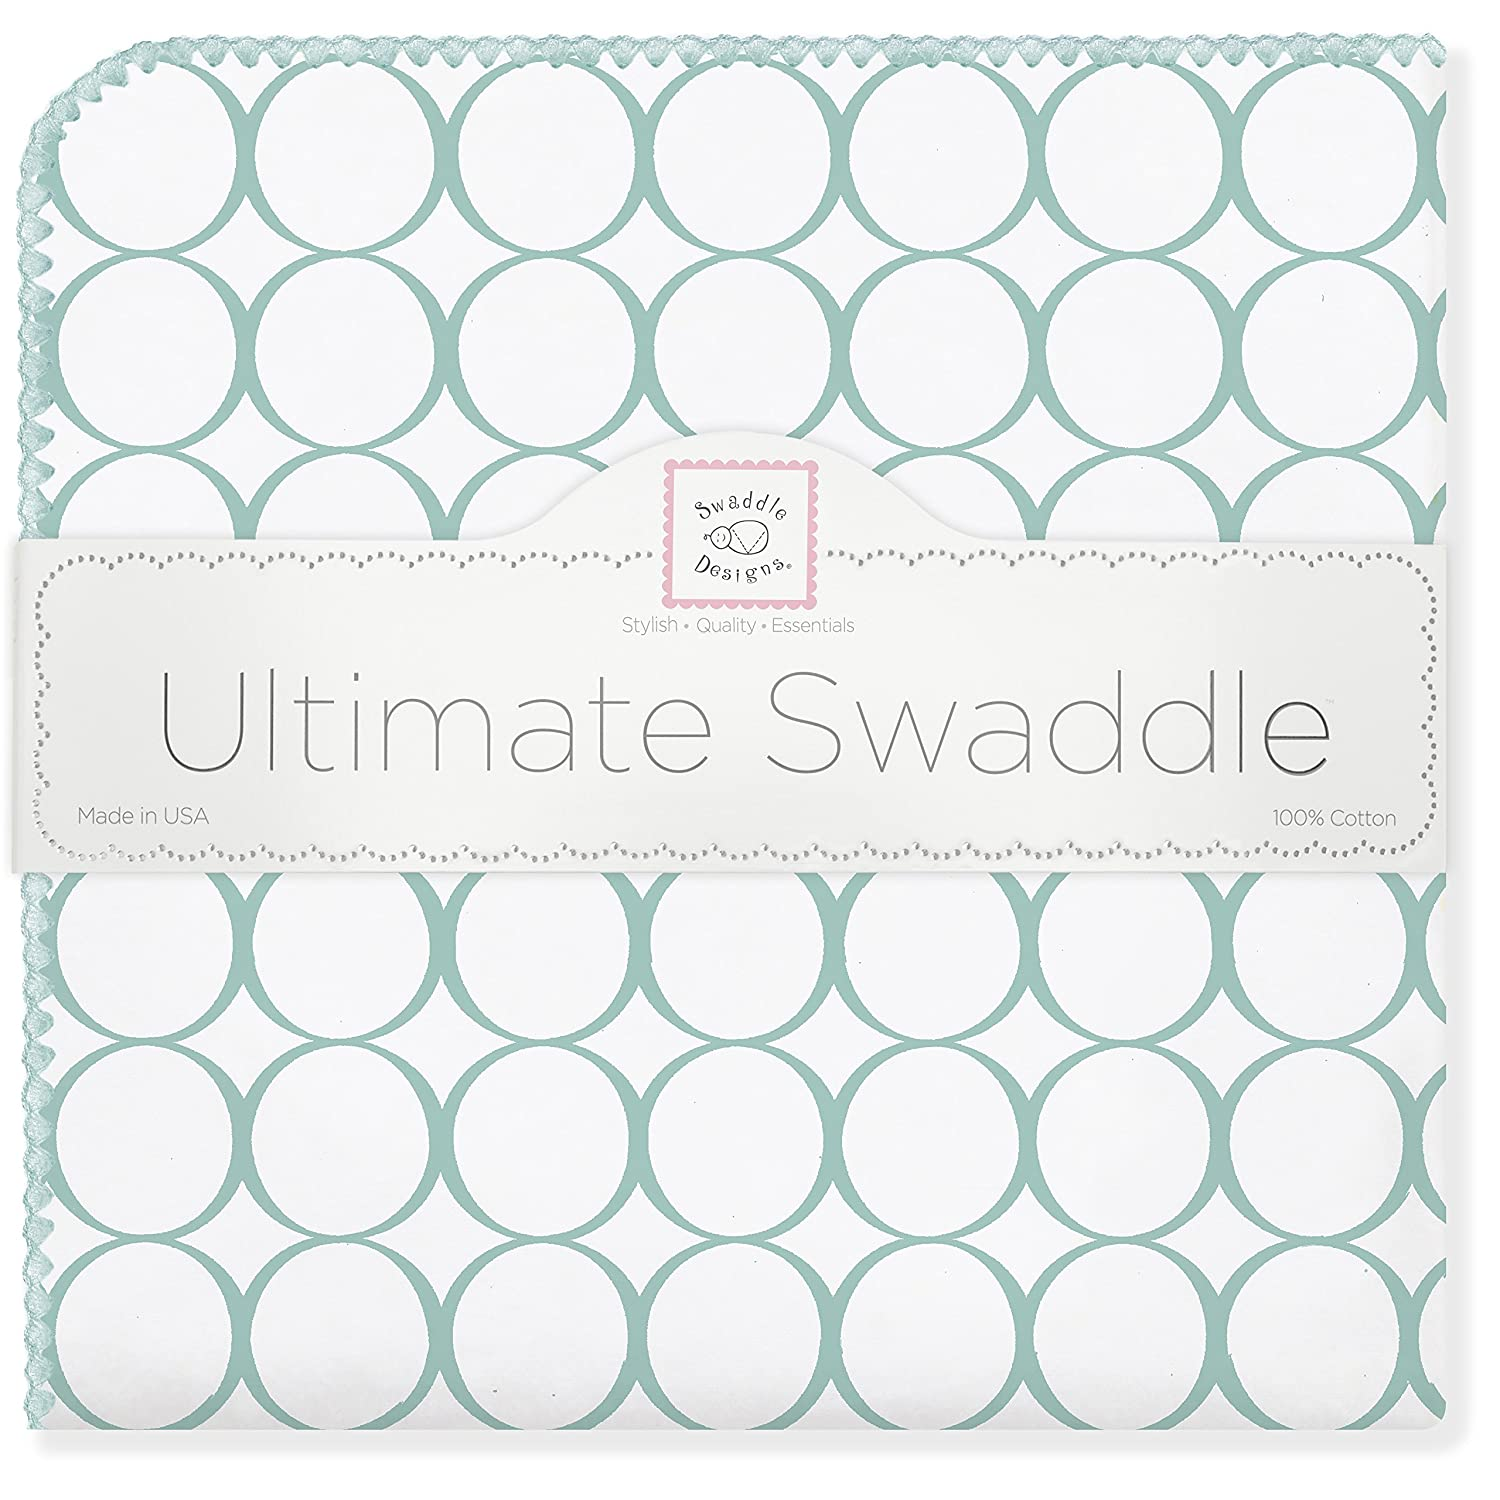 SwaddleDesigns Ultimate Swaddle, X-Large Receiving Blanket, Made in USA Premium Cotton Flannel, Sterling Mod Circles on Sunwashed Yellow (Mom's Choice Award Winner) Sterling Mod Circles on Sunwashed Yellow (Mom' s Choice Award Winner) SD-350SY